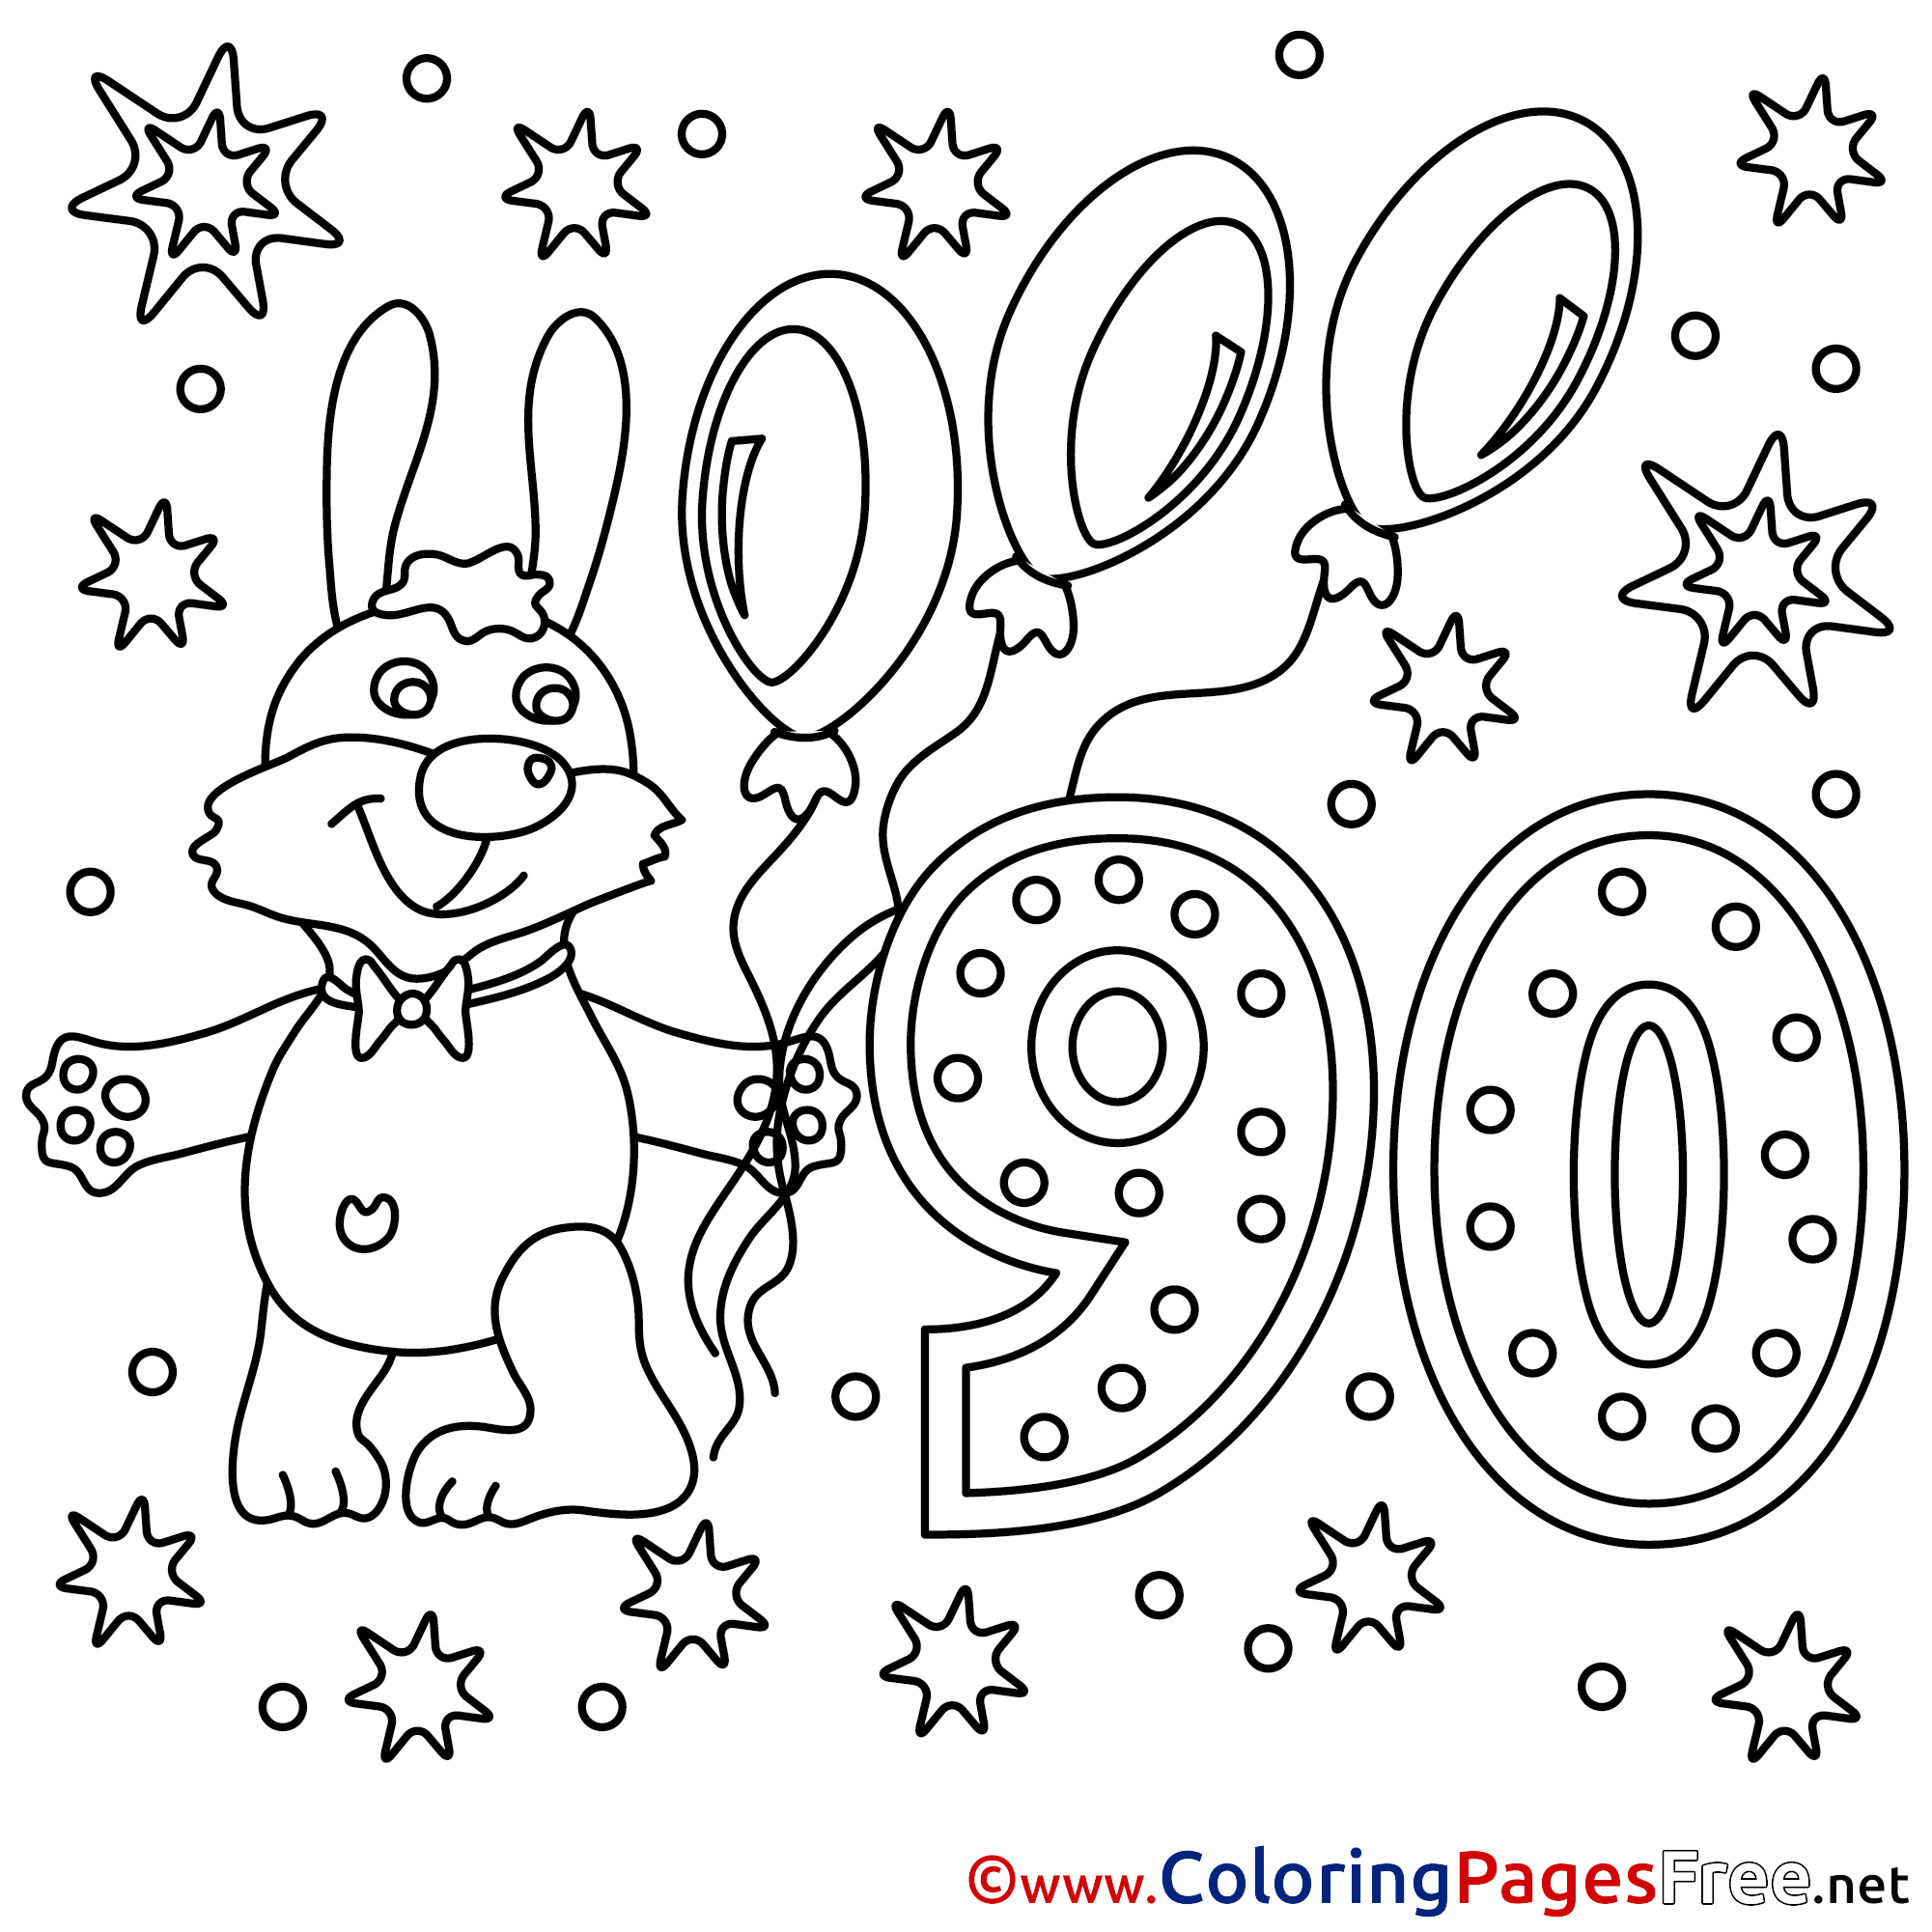 90 years download happy birthday coloring pages